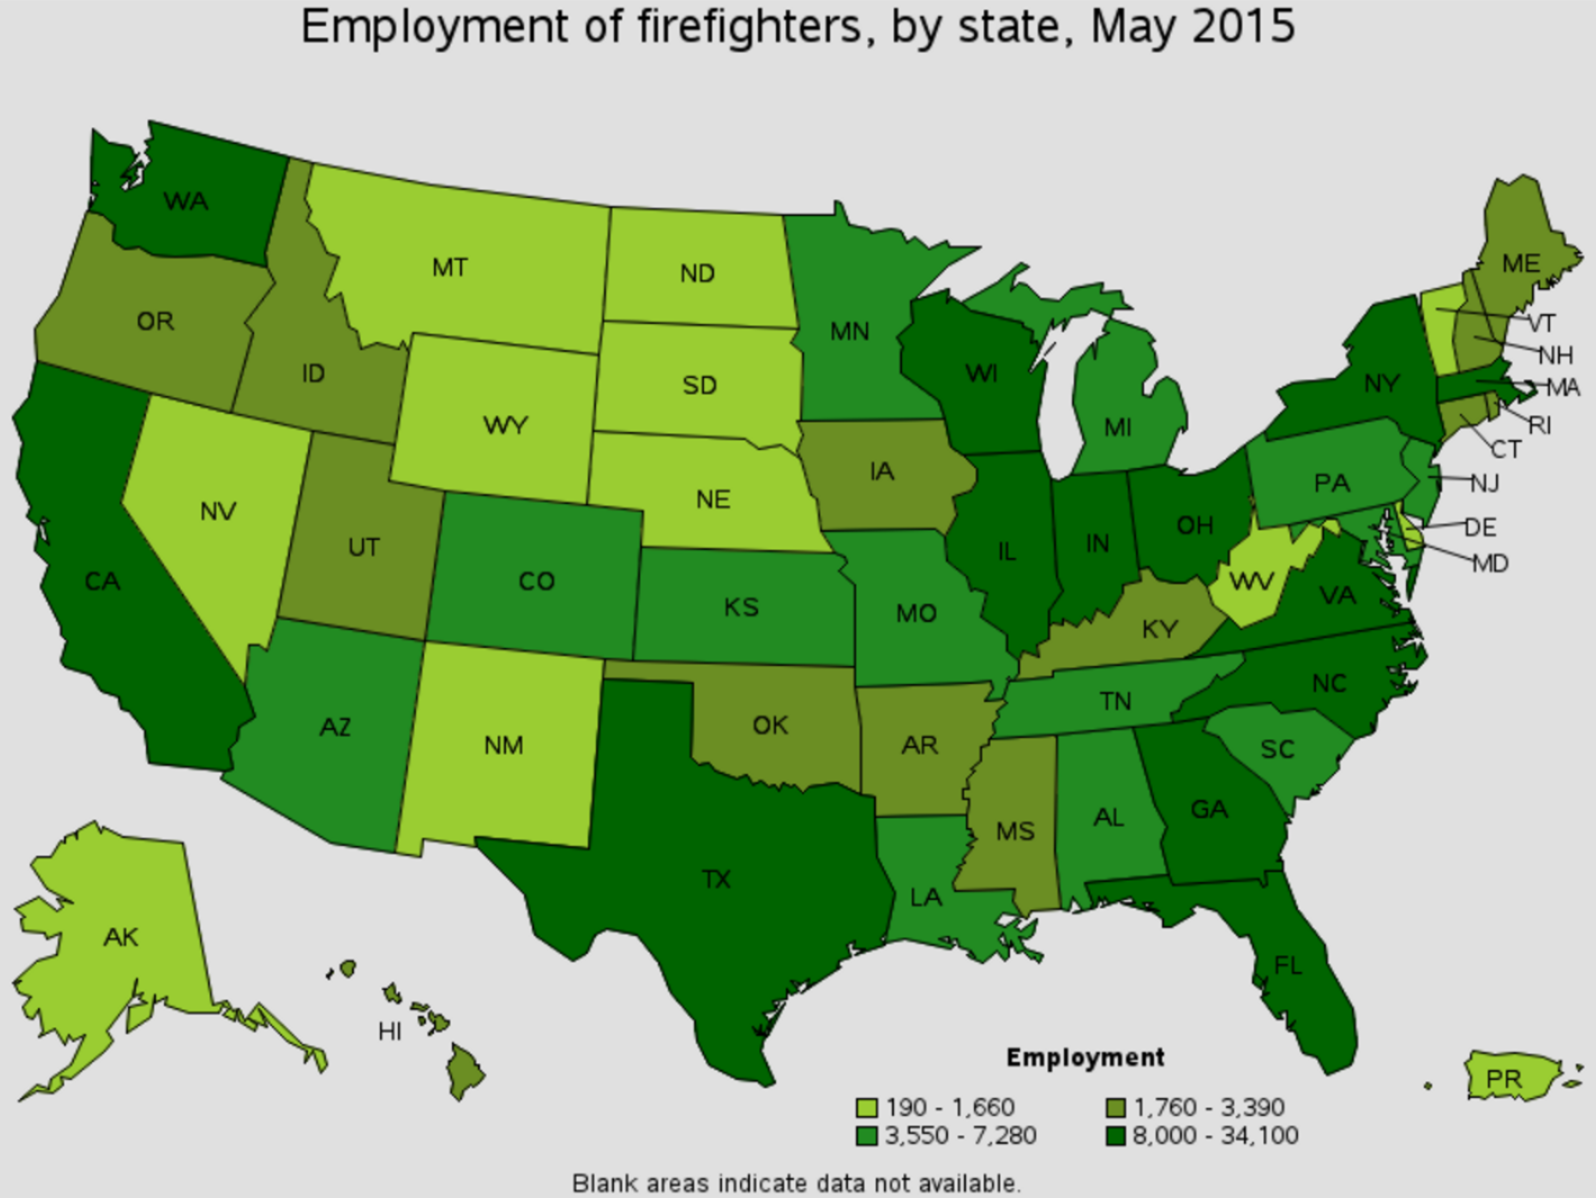 firefighter job outlook by state Santa Rosa California